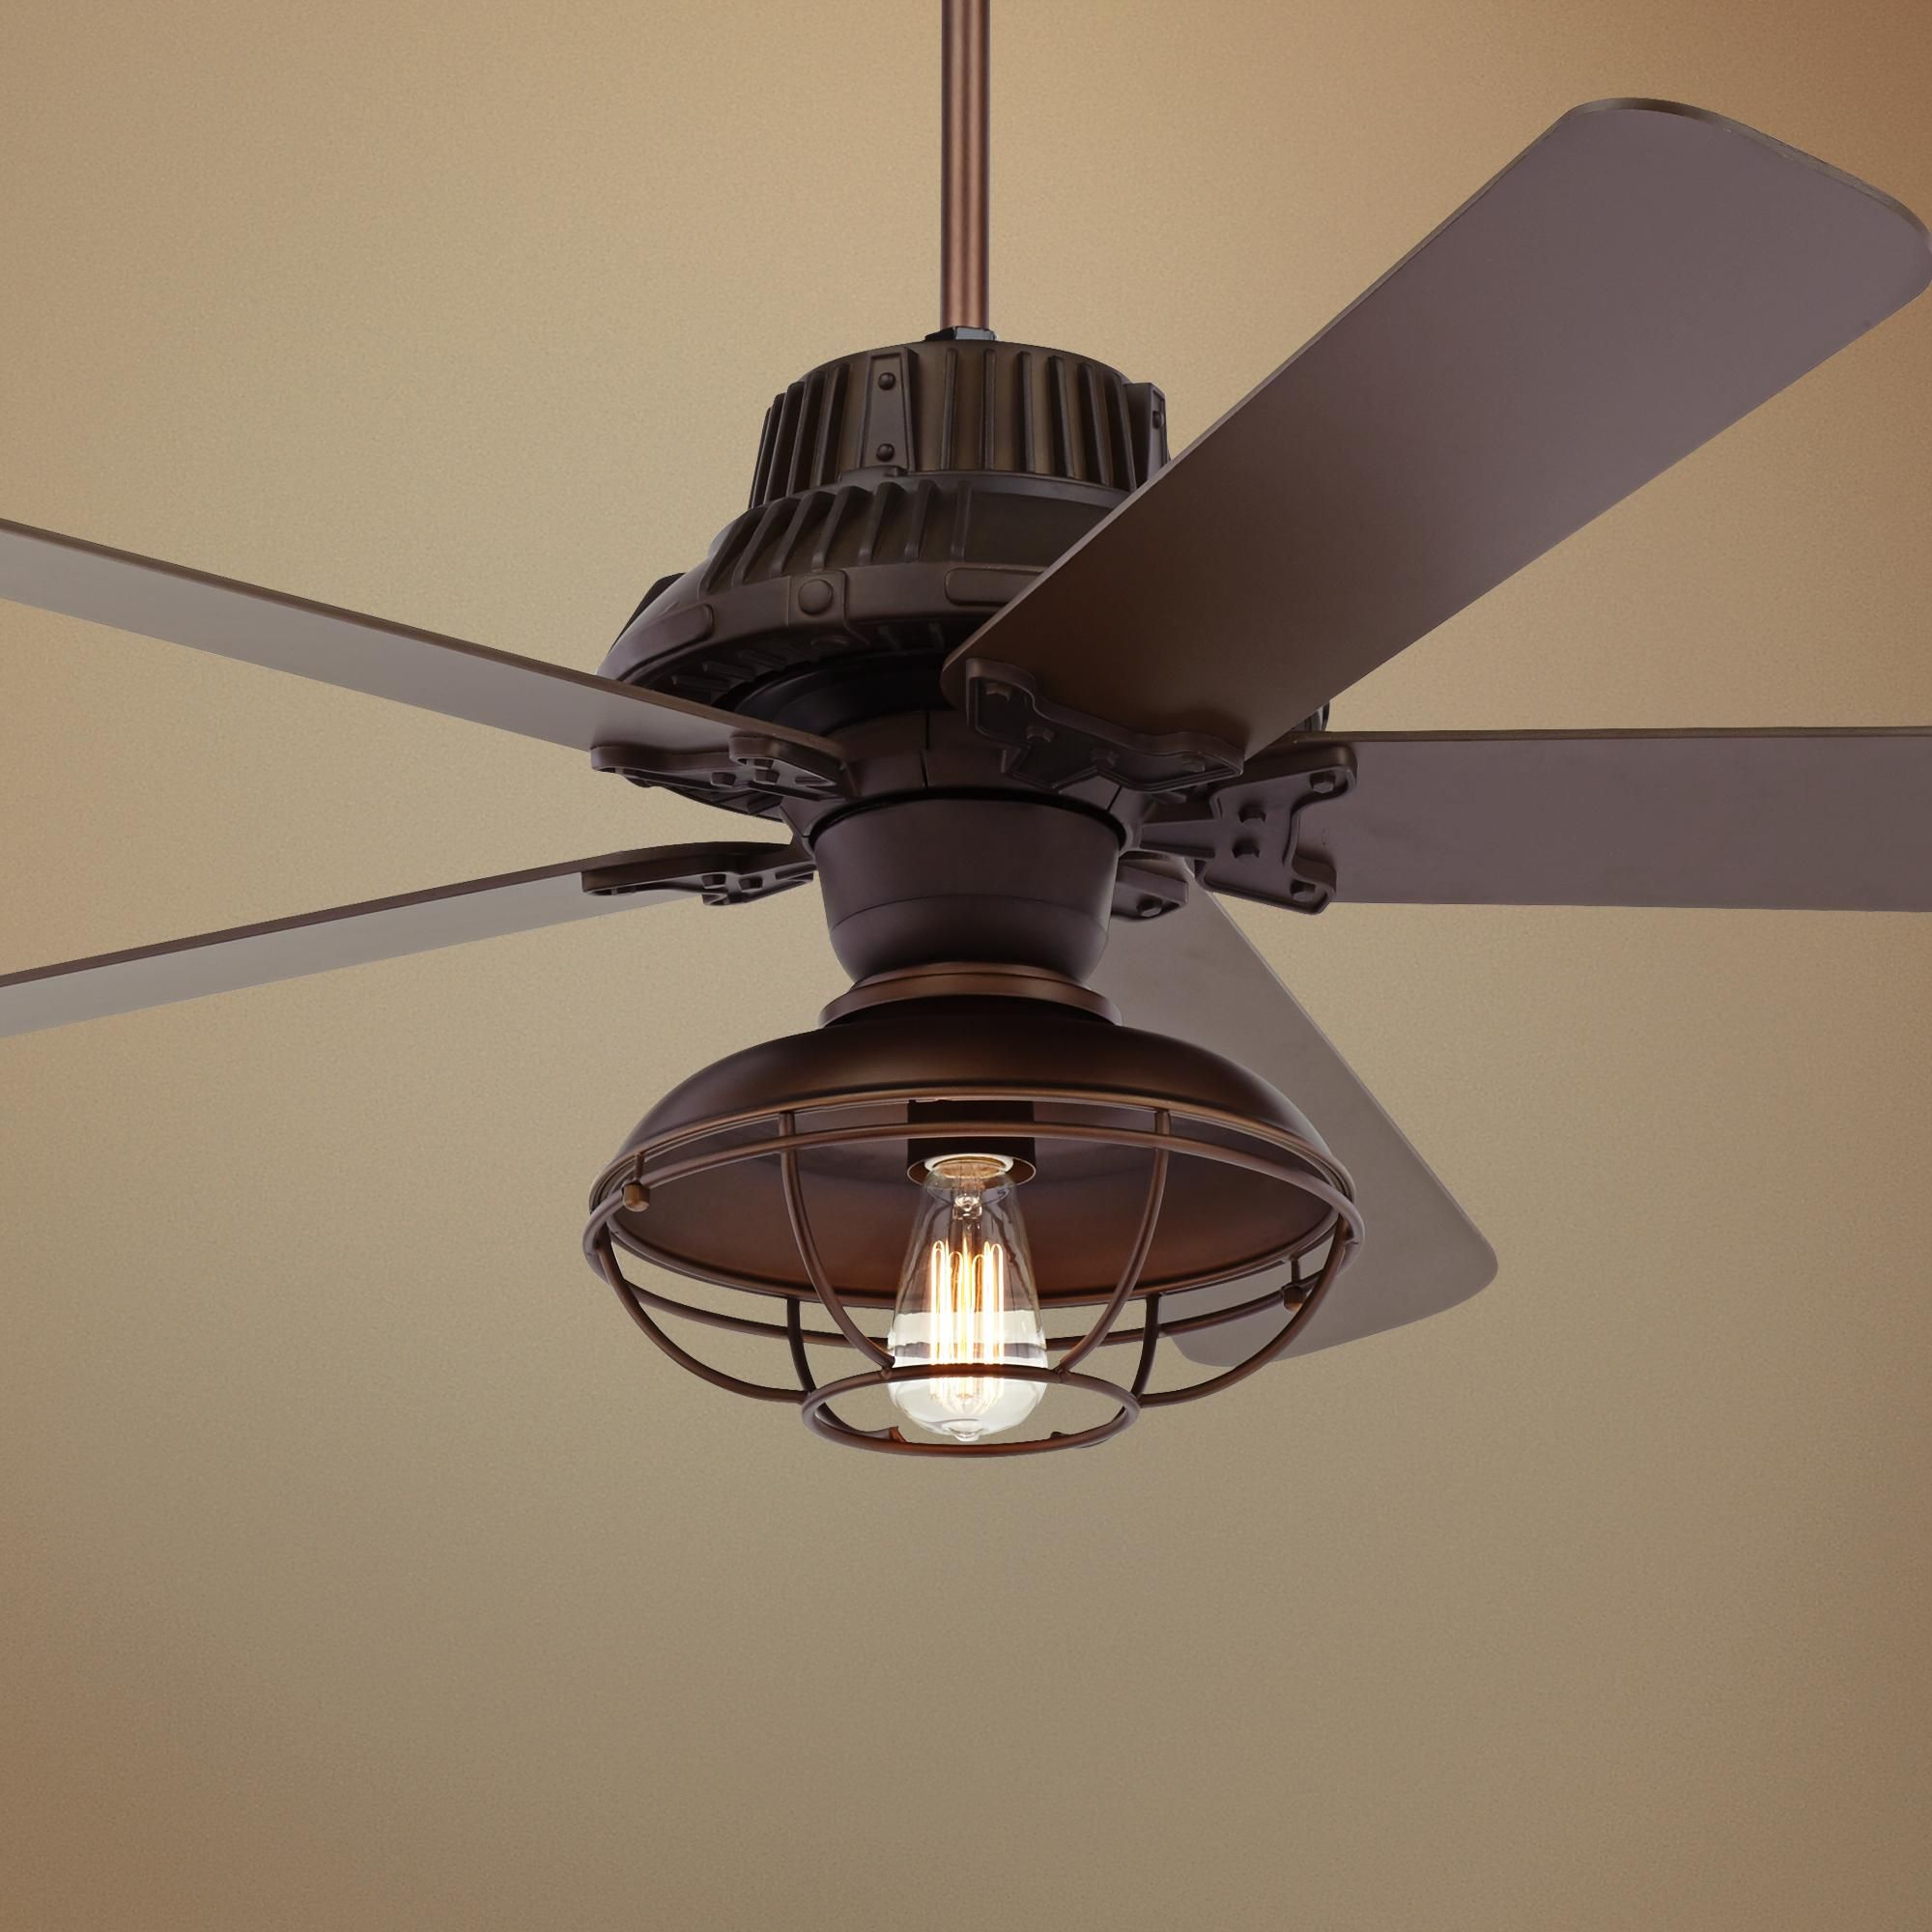 60 Inch Industrial Forge Led Outdoor Ceiling Fan In 2020 Ceiling